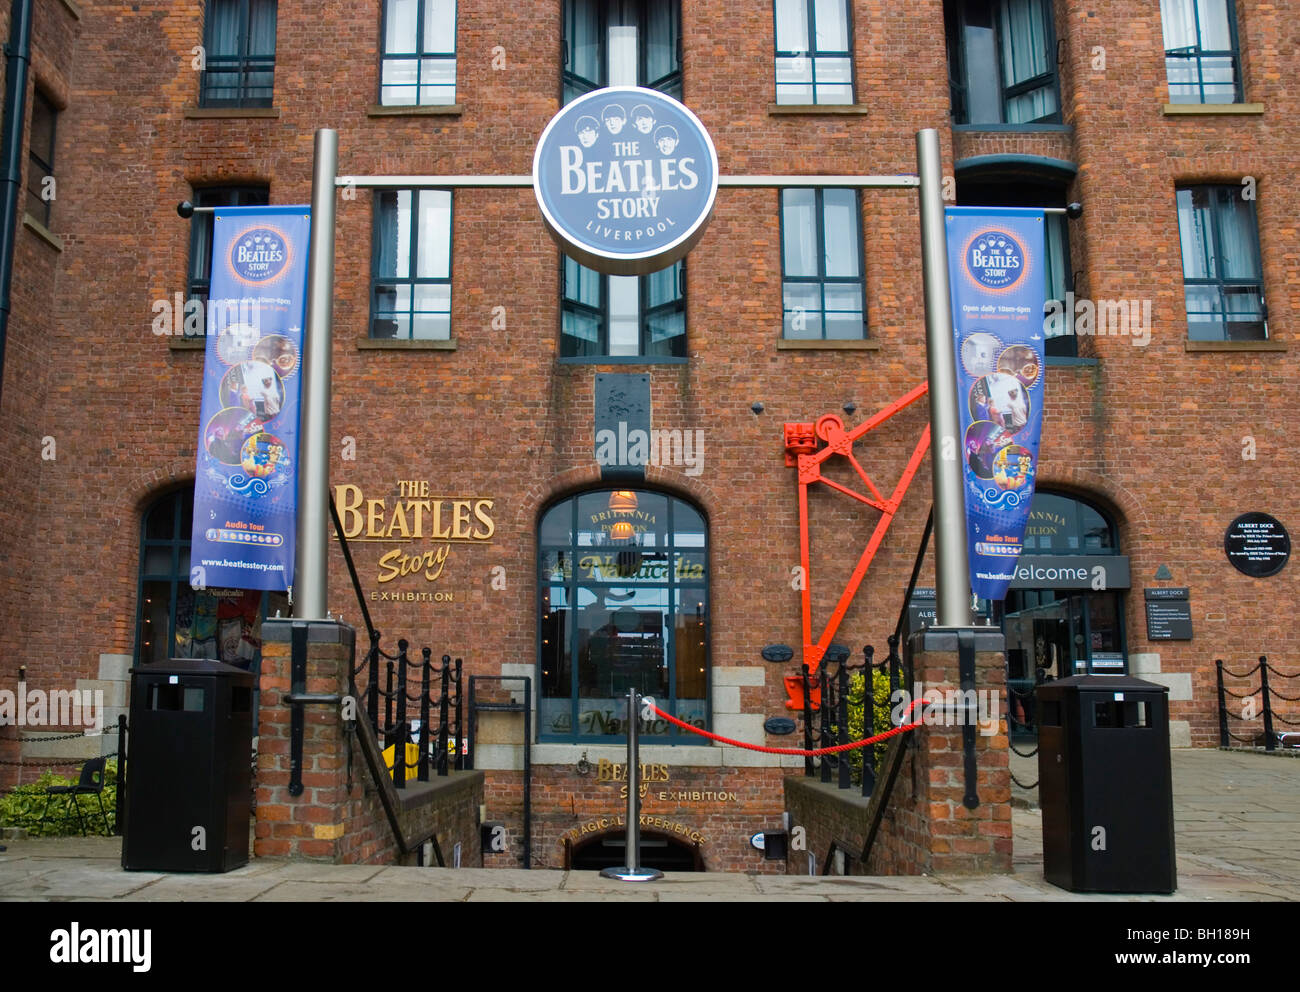 The Beatles Story exterior Albert Dock complex central Liverpool England UK Europe - Stock Image